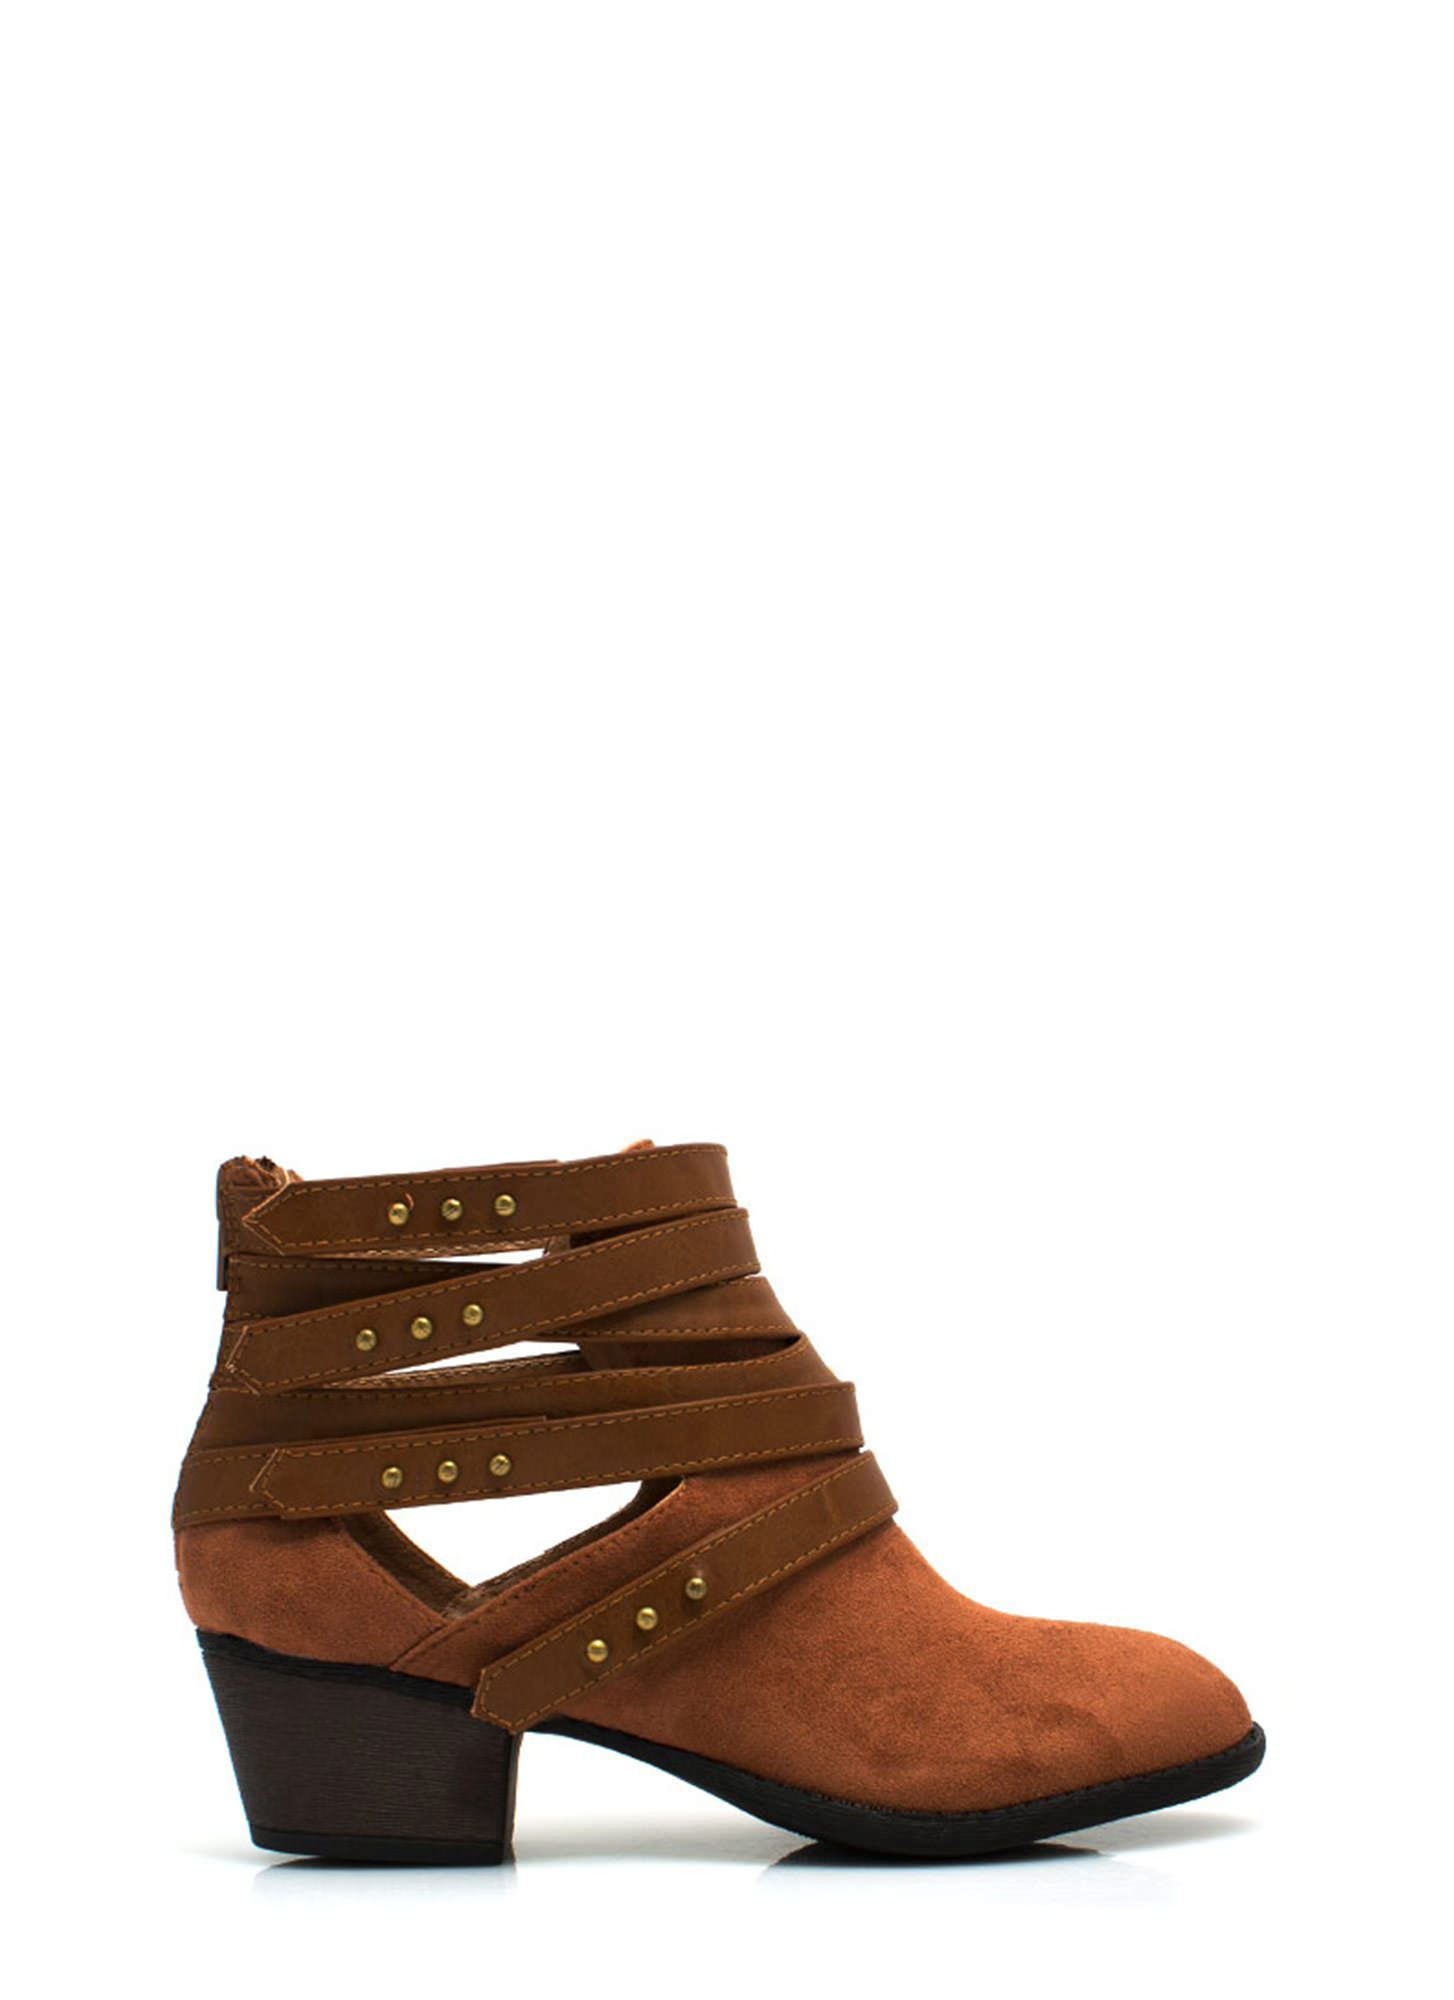 Strap Happy Studded Booties COGNAC